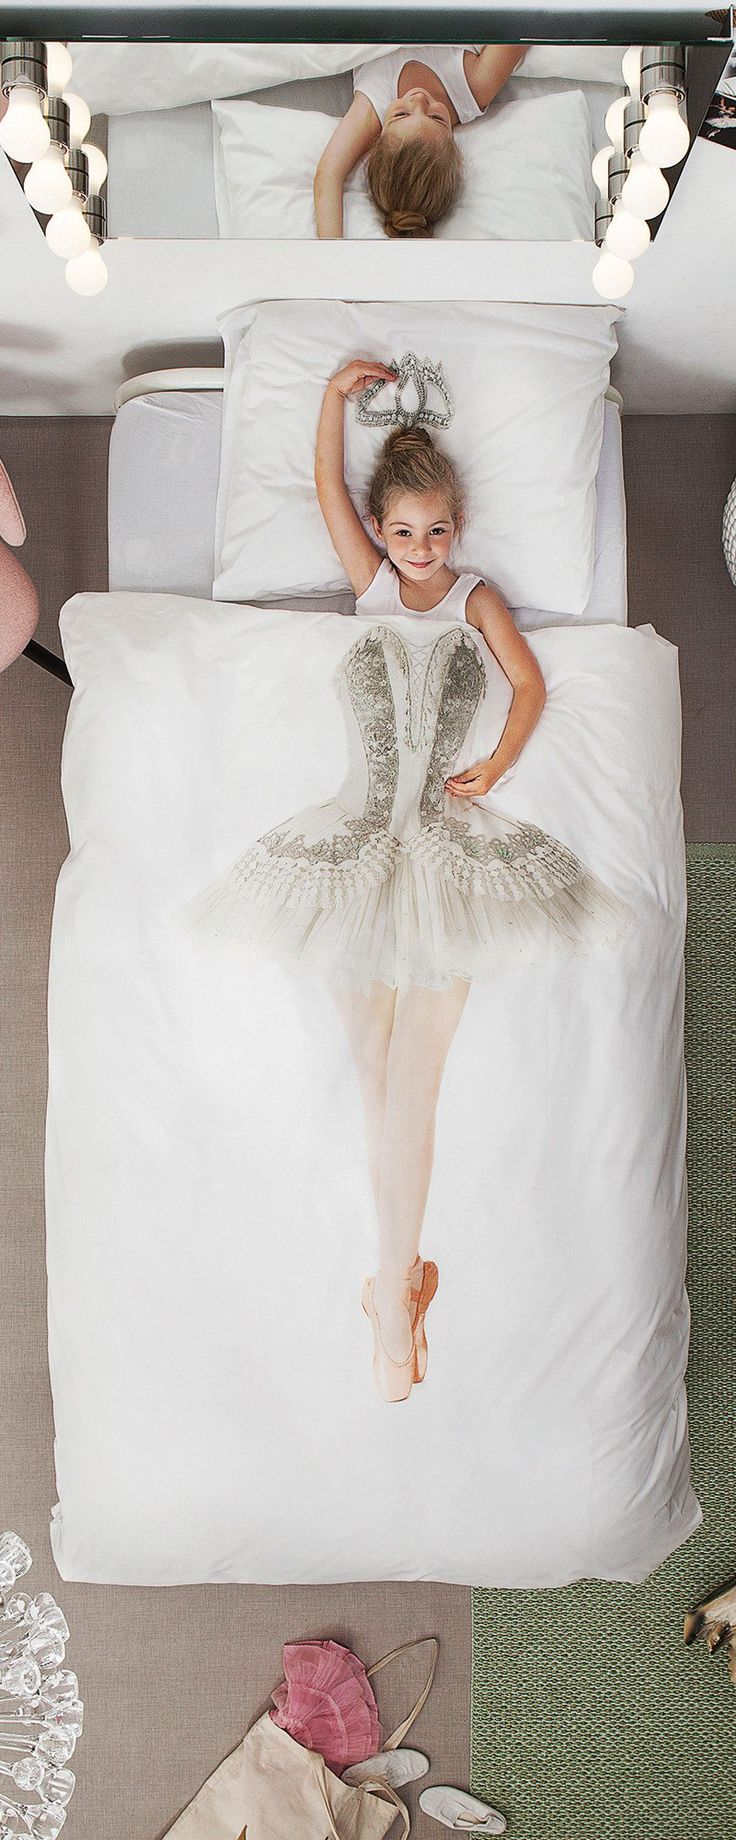 These photo-realistic kids' duvet covers let kids play dress up as they get tucked in. Super soft and meticulously designed, the duvets feature beautiful screen printed images that will pique kids' imagination. They can be mermaids, astronauts, or T-rexes just by snuggling up under the covers.